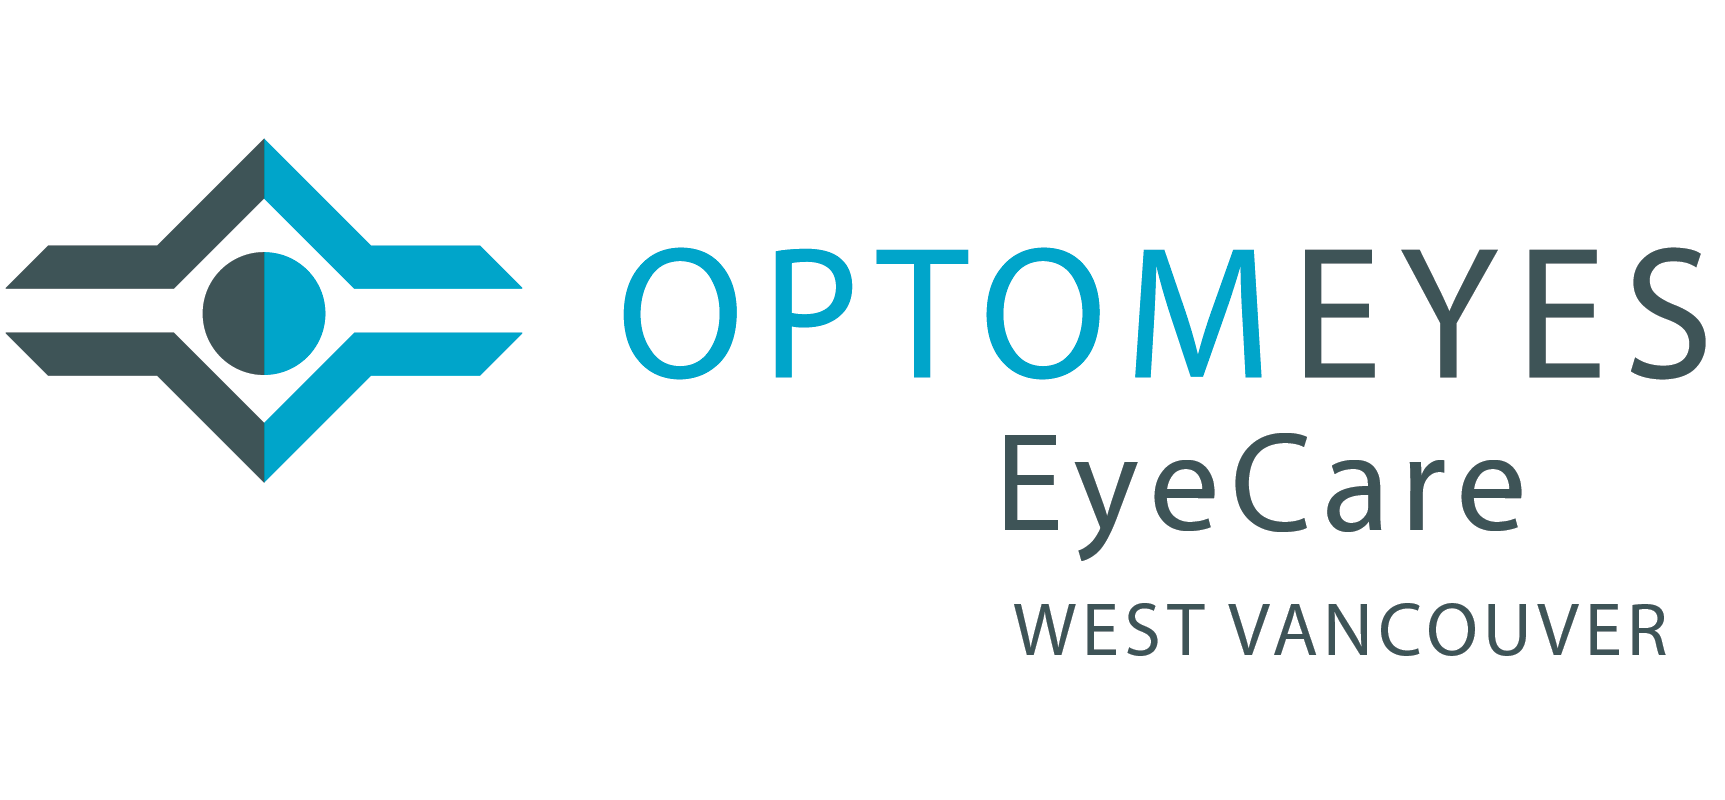 Optomeyes Eye Care West Vancouver